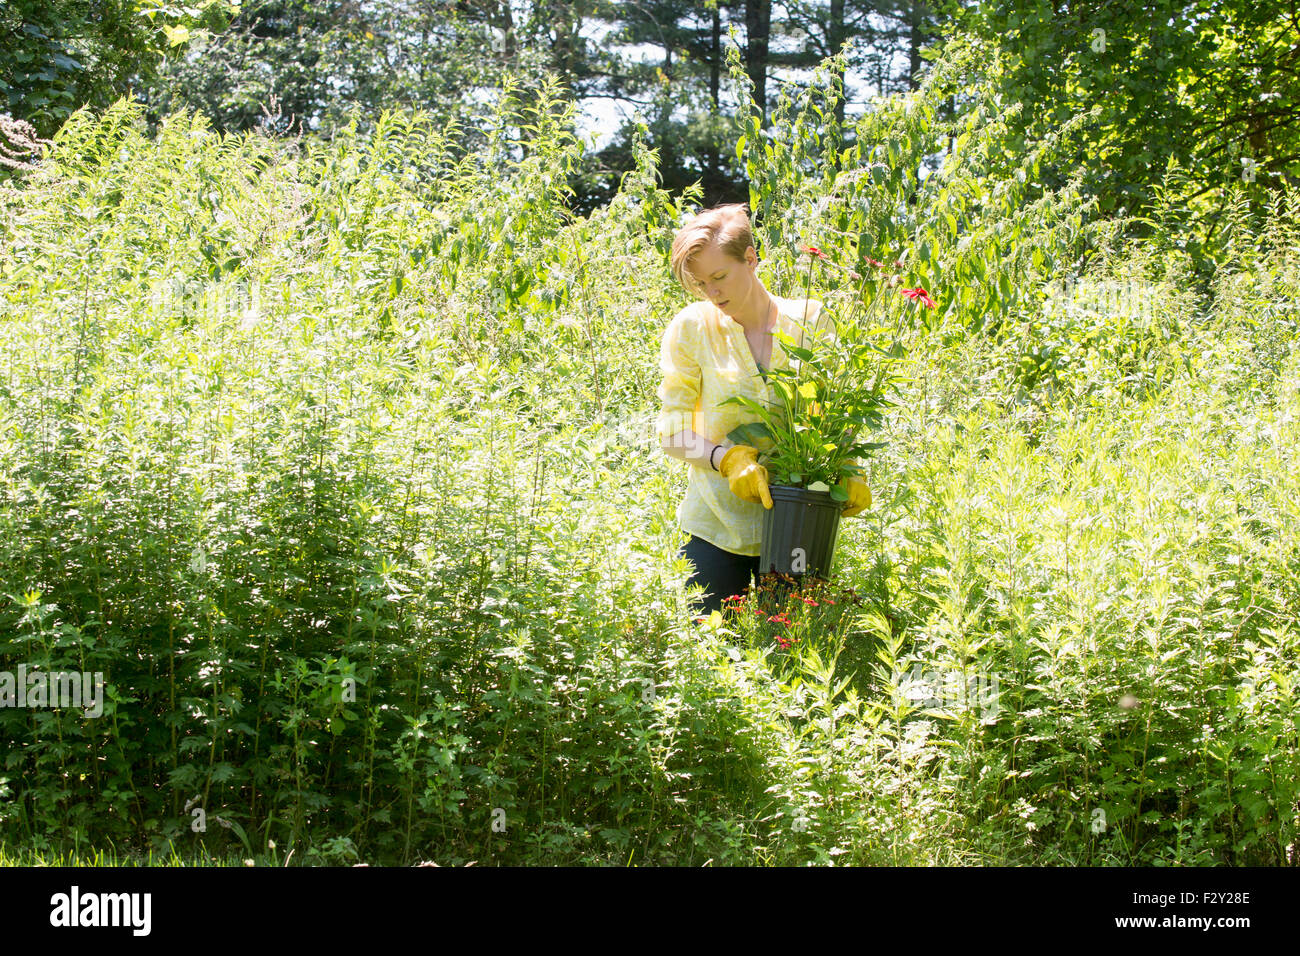 A woman among dense plantings of flowers and tall green and flowering plants at a commercial nursery. - Stock Image